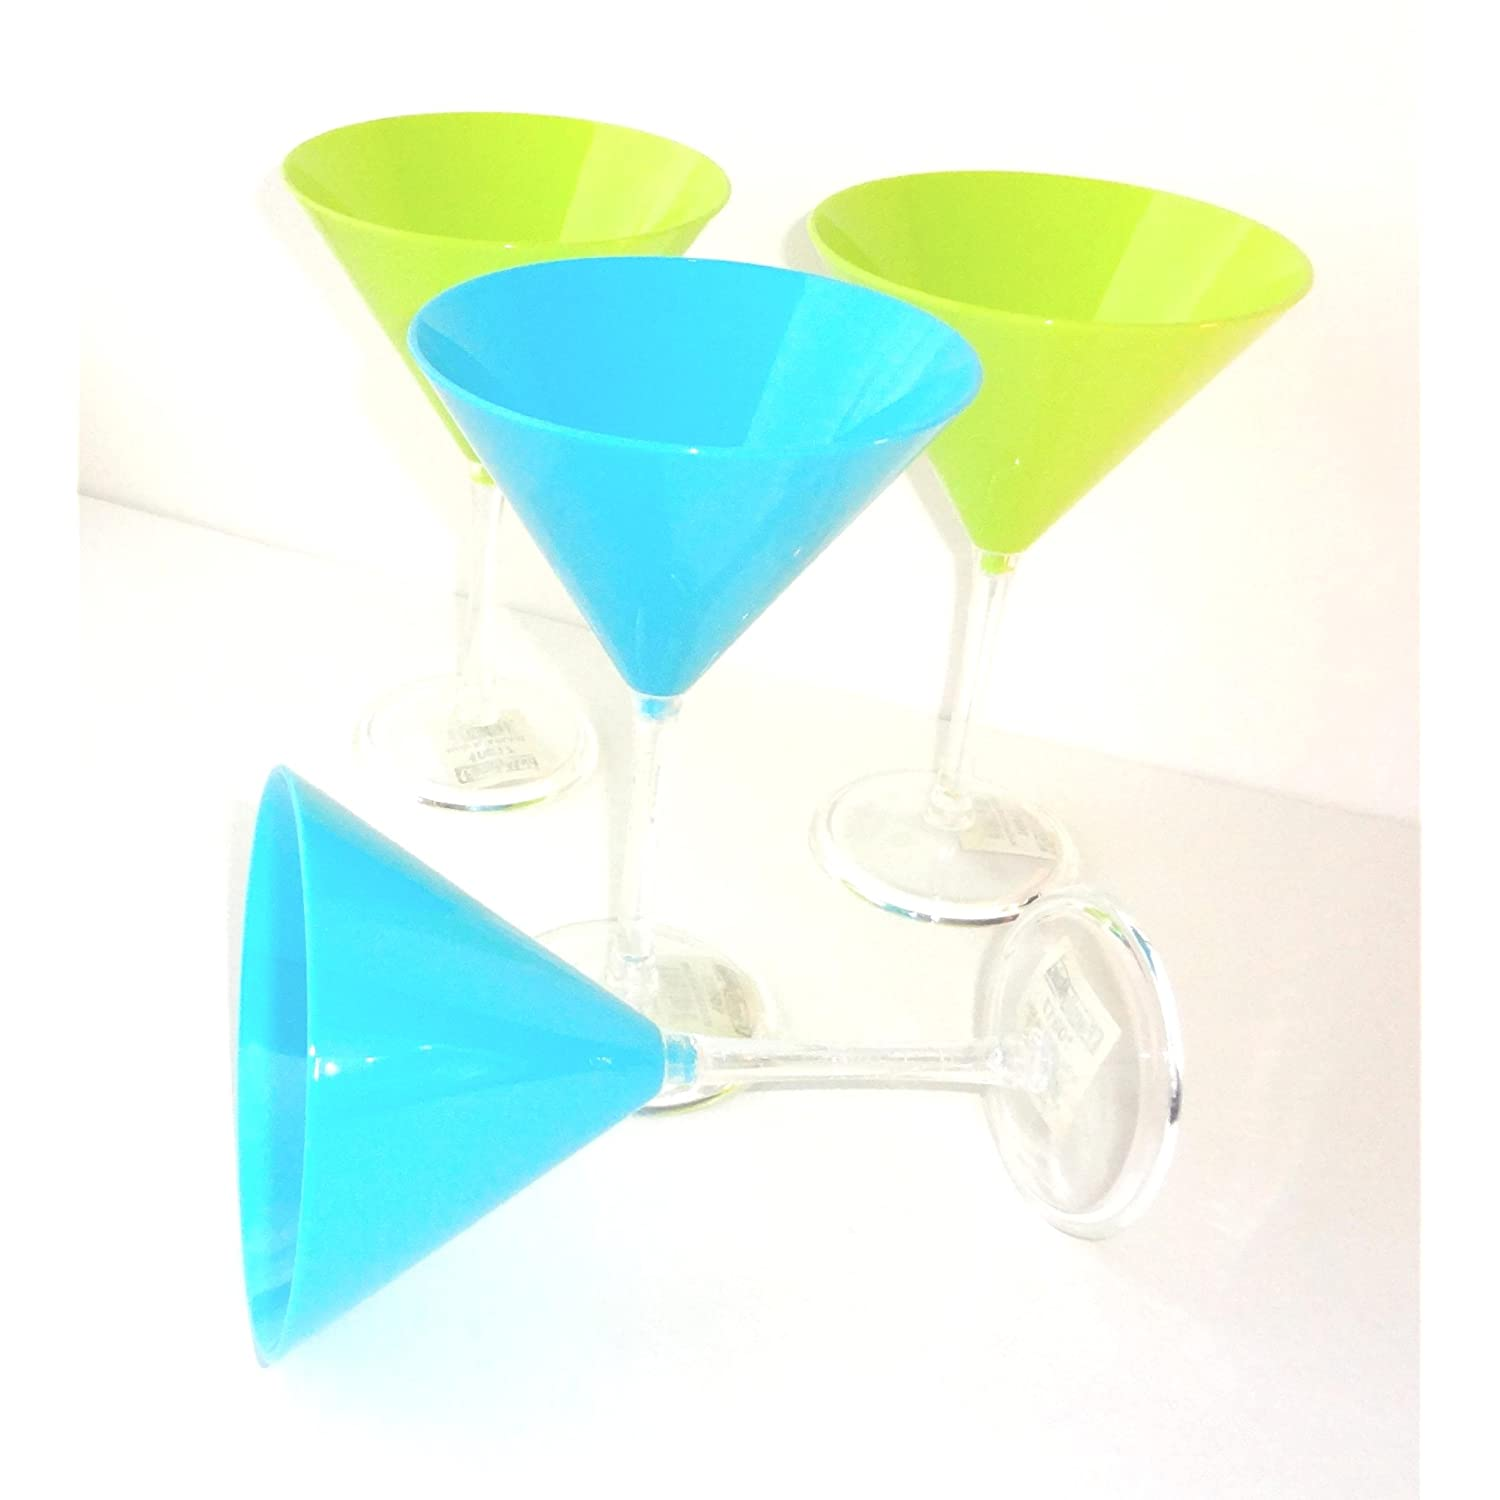 Margarita Glasses Set of 4 Neon Colors Blue & Neon Green 8.5 Oz